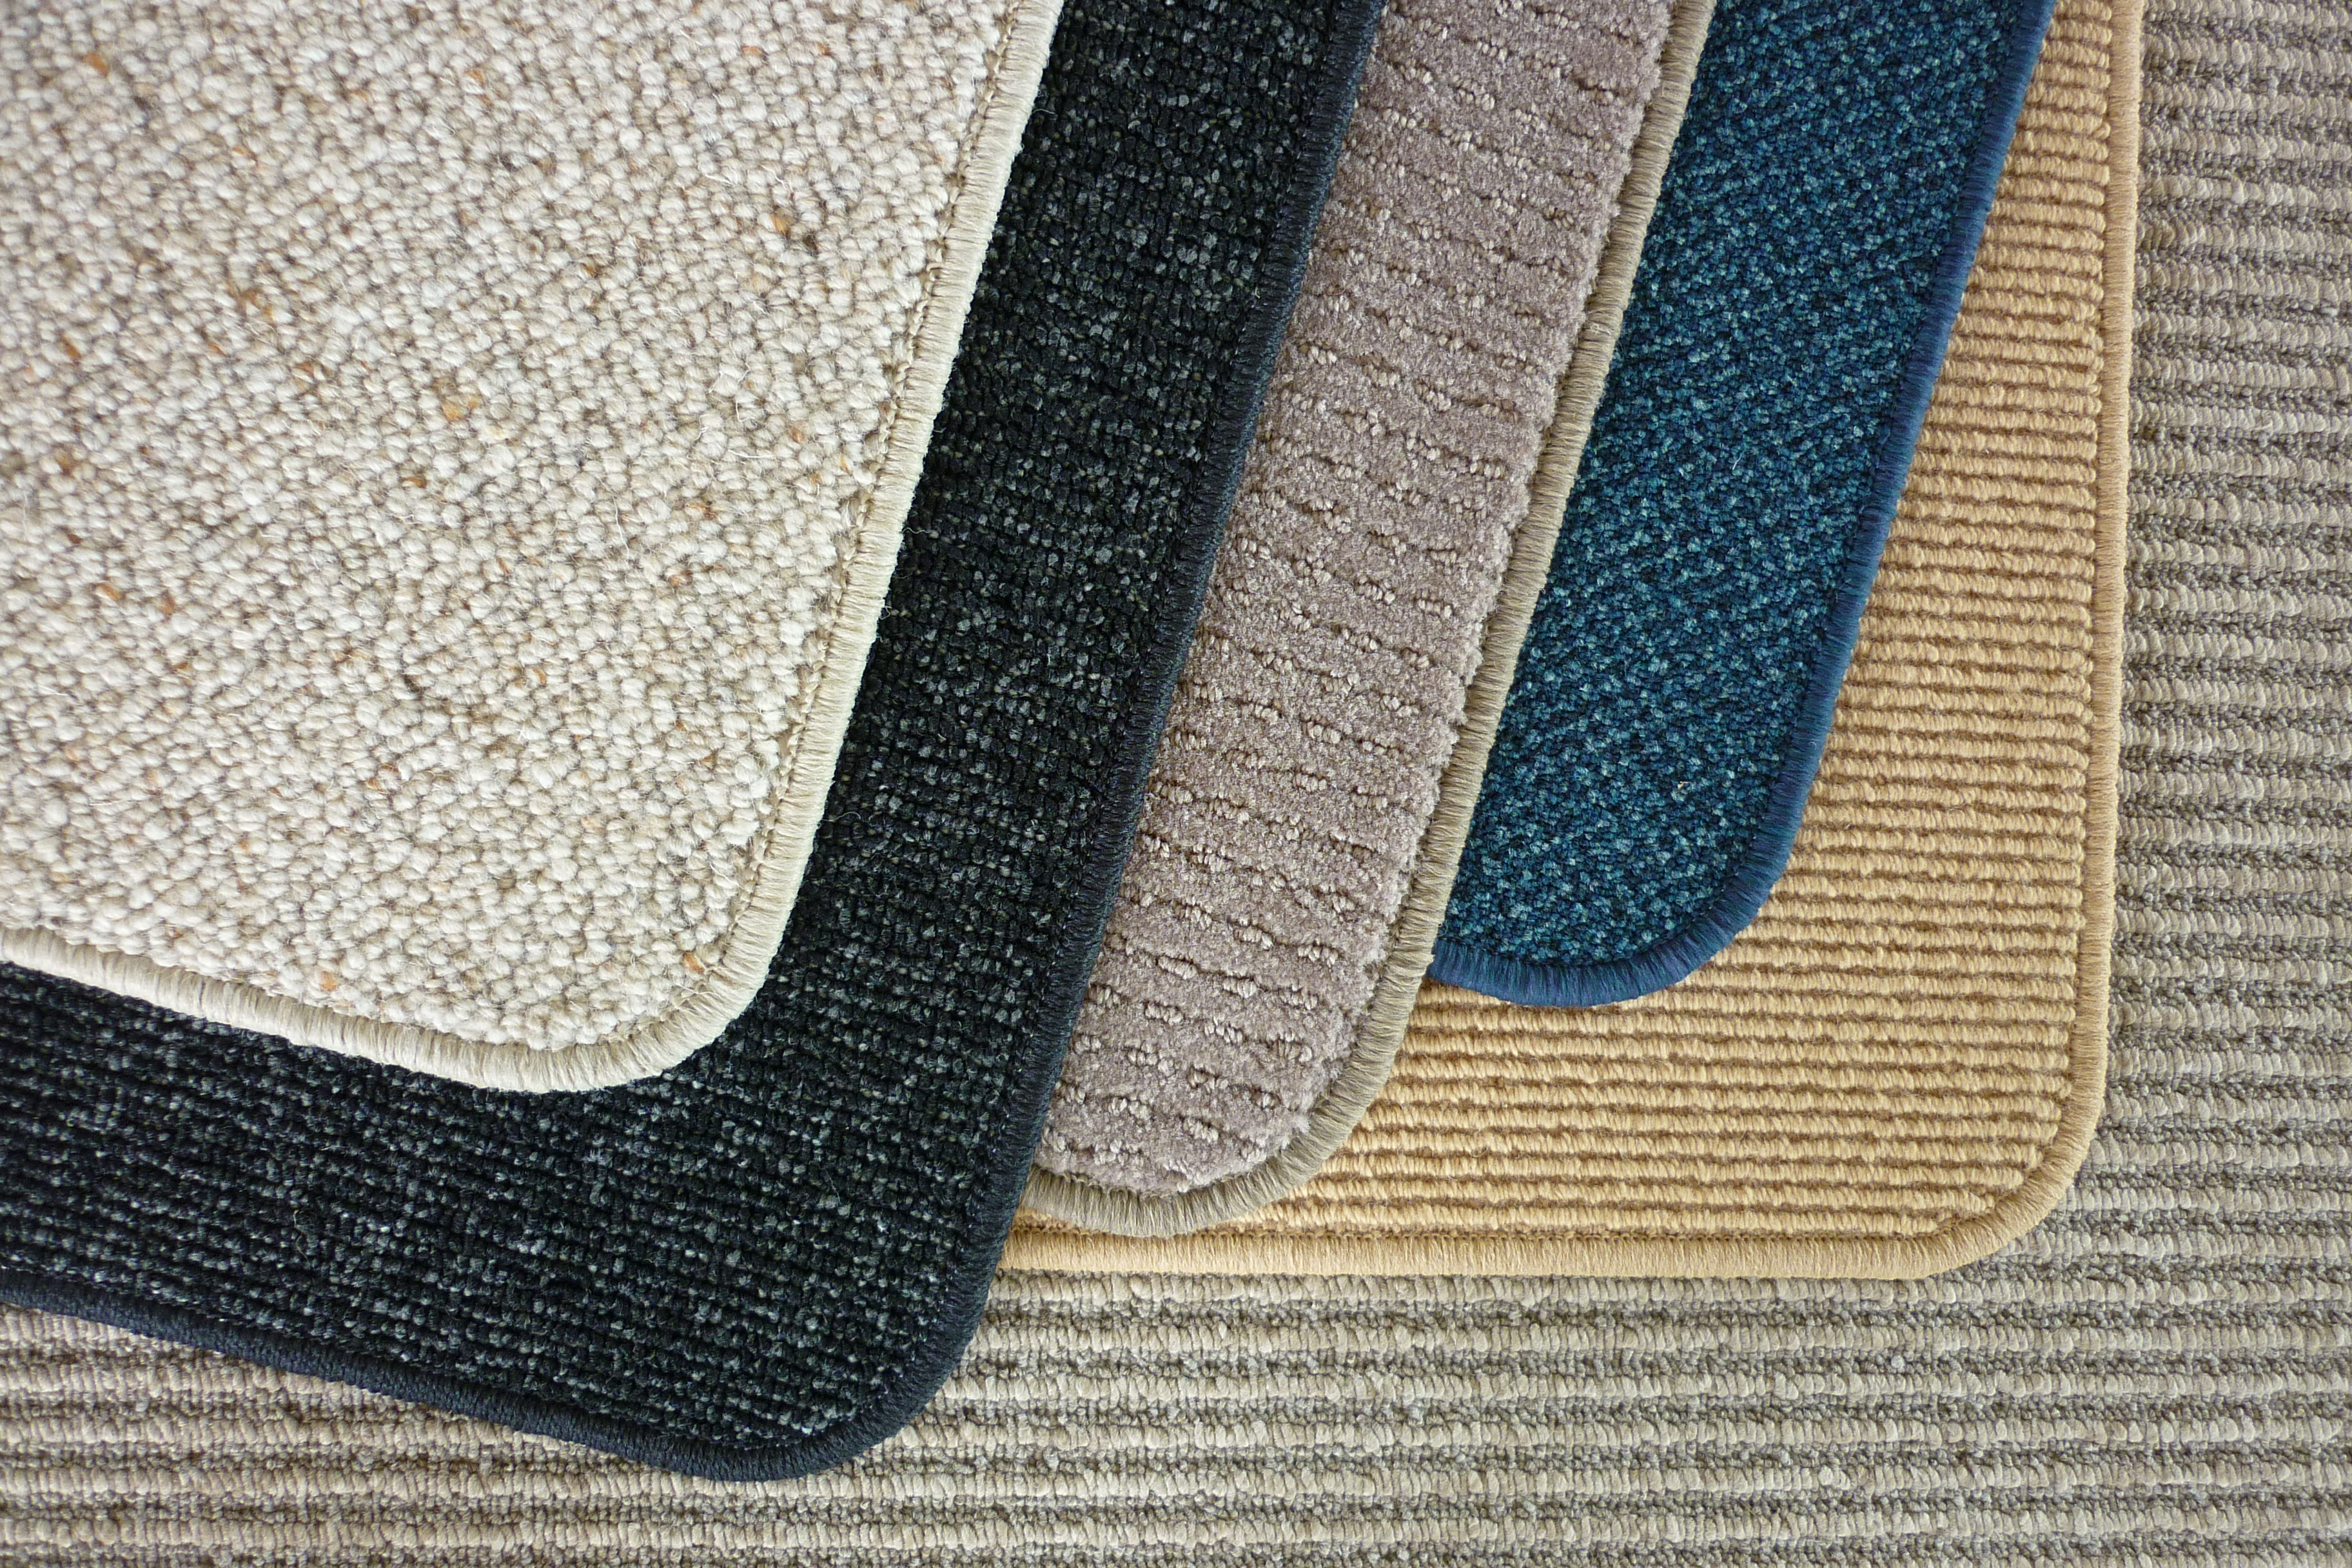 edged-carpet-binding.jpg